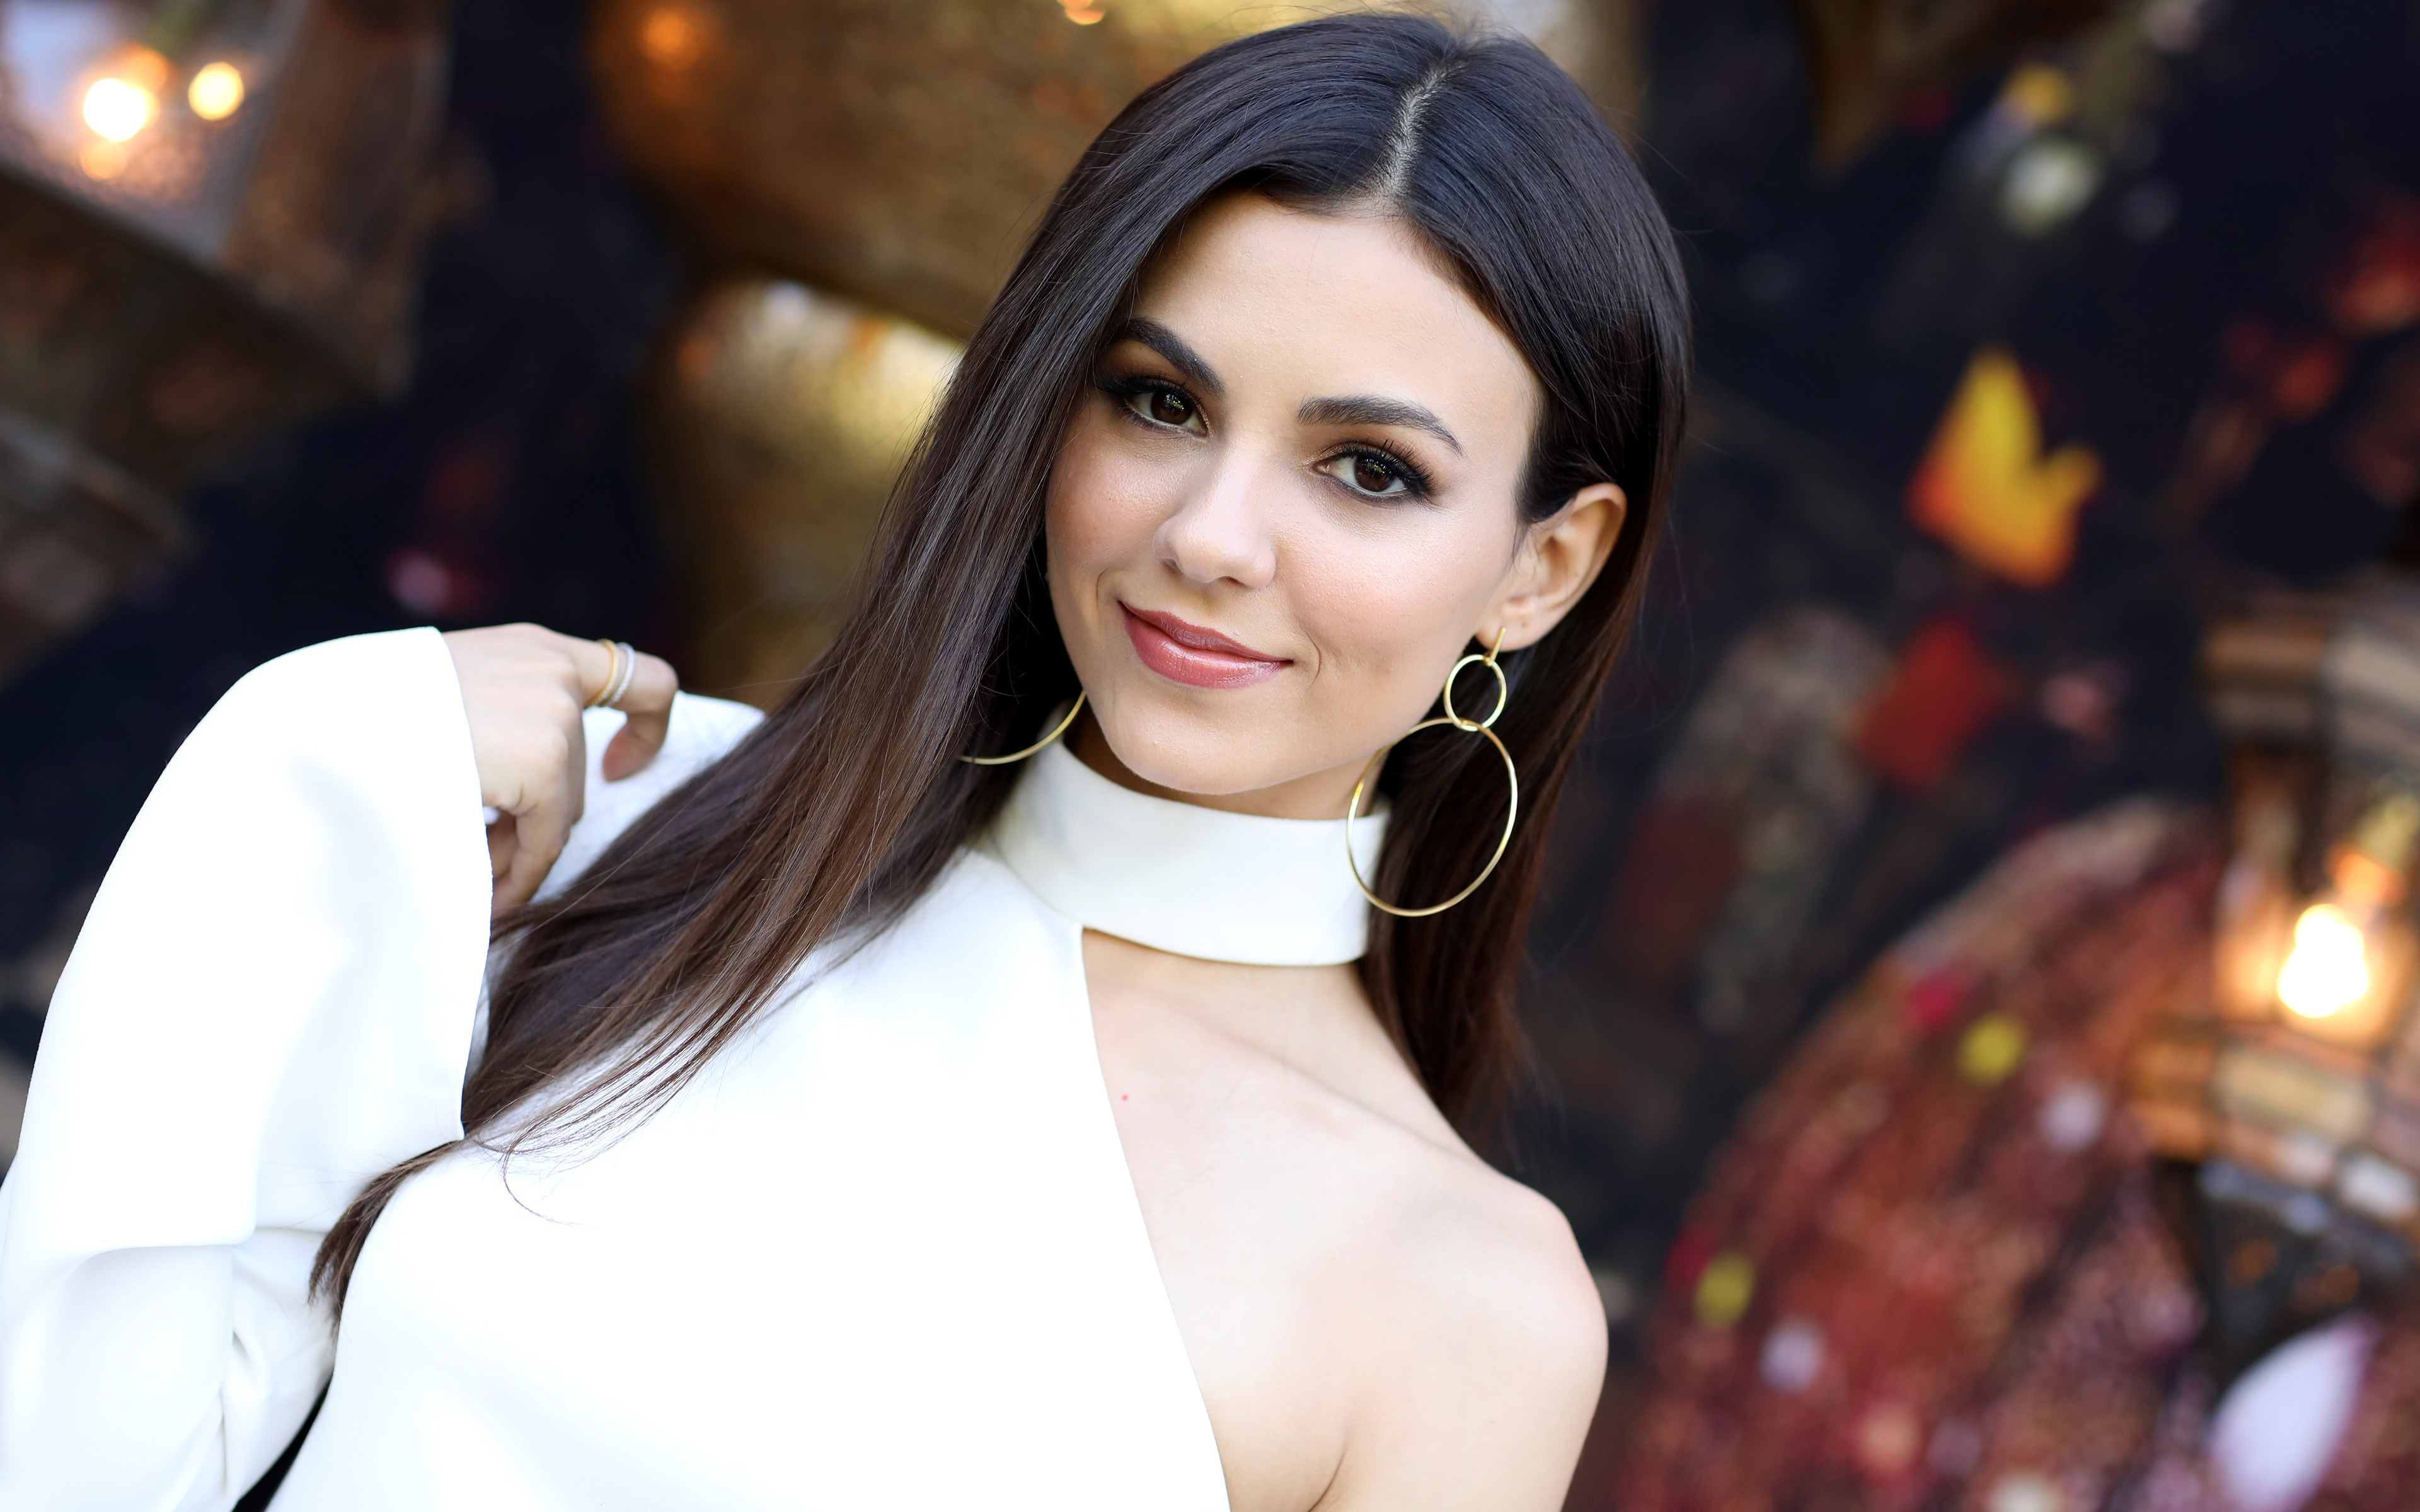 Victoria Justice 2018 Actress 4K Photo - 3840x2400 wallpaper download